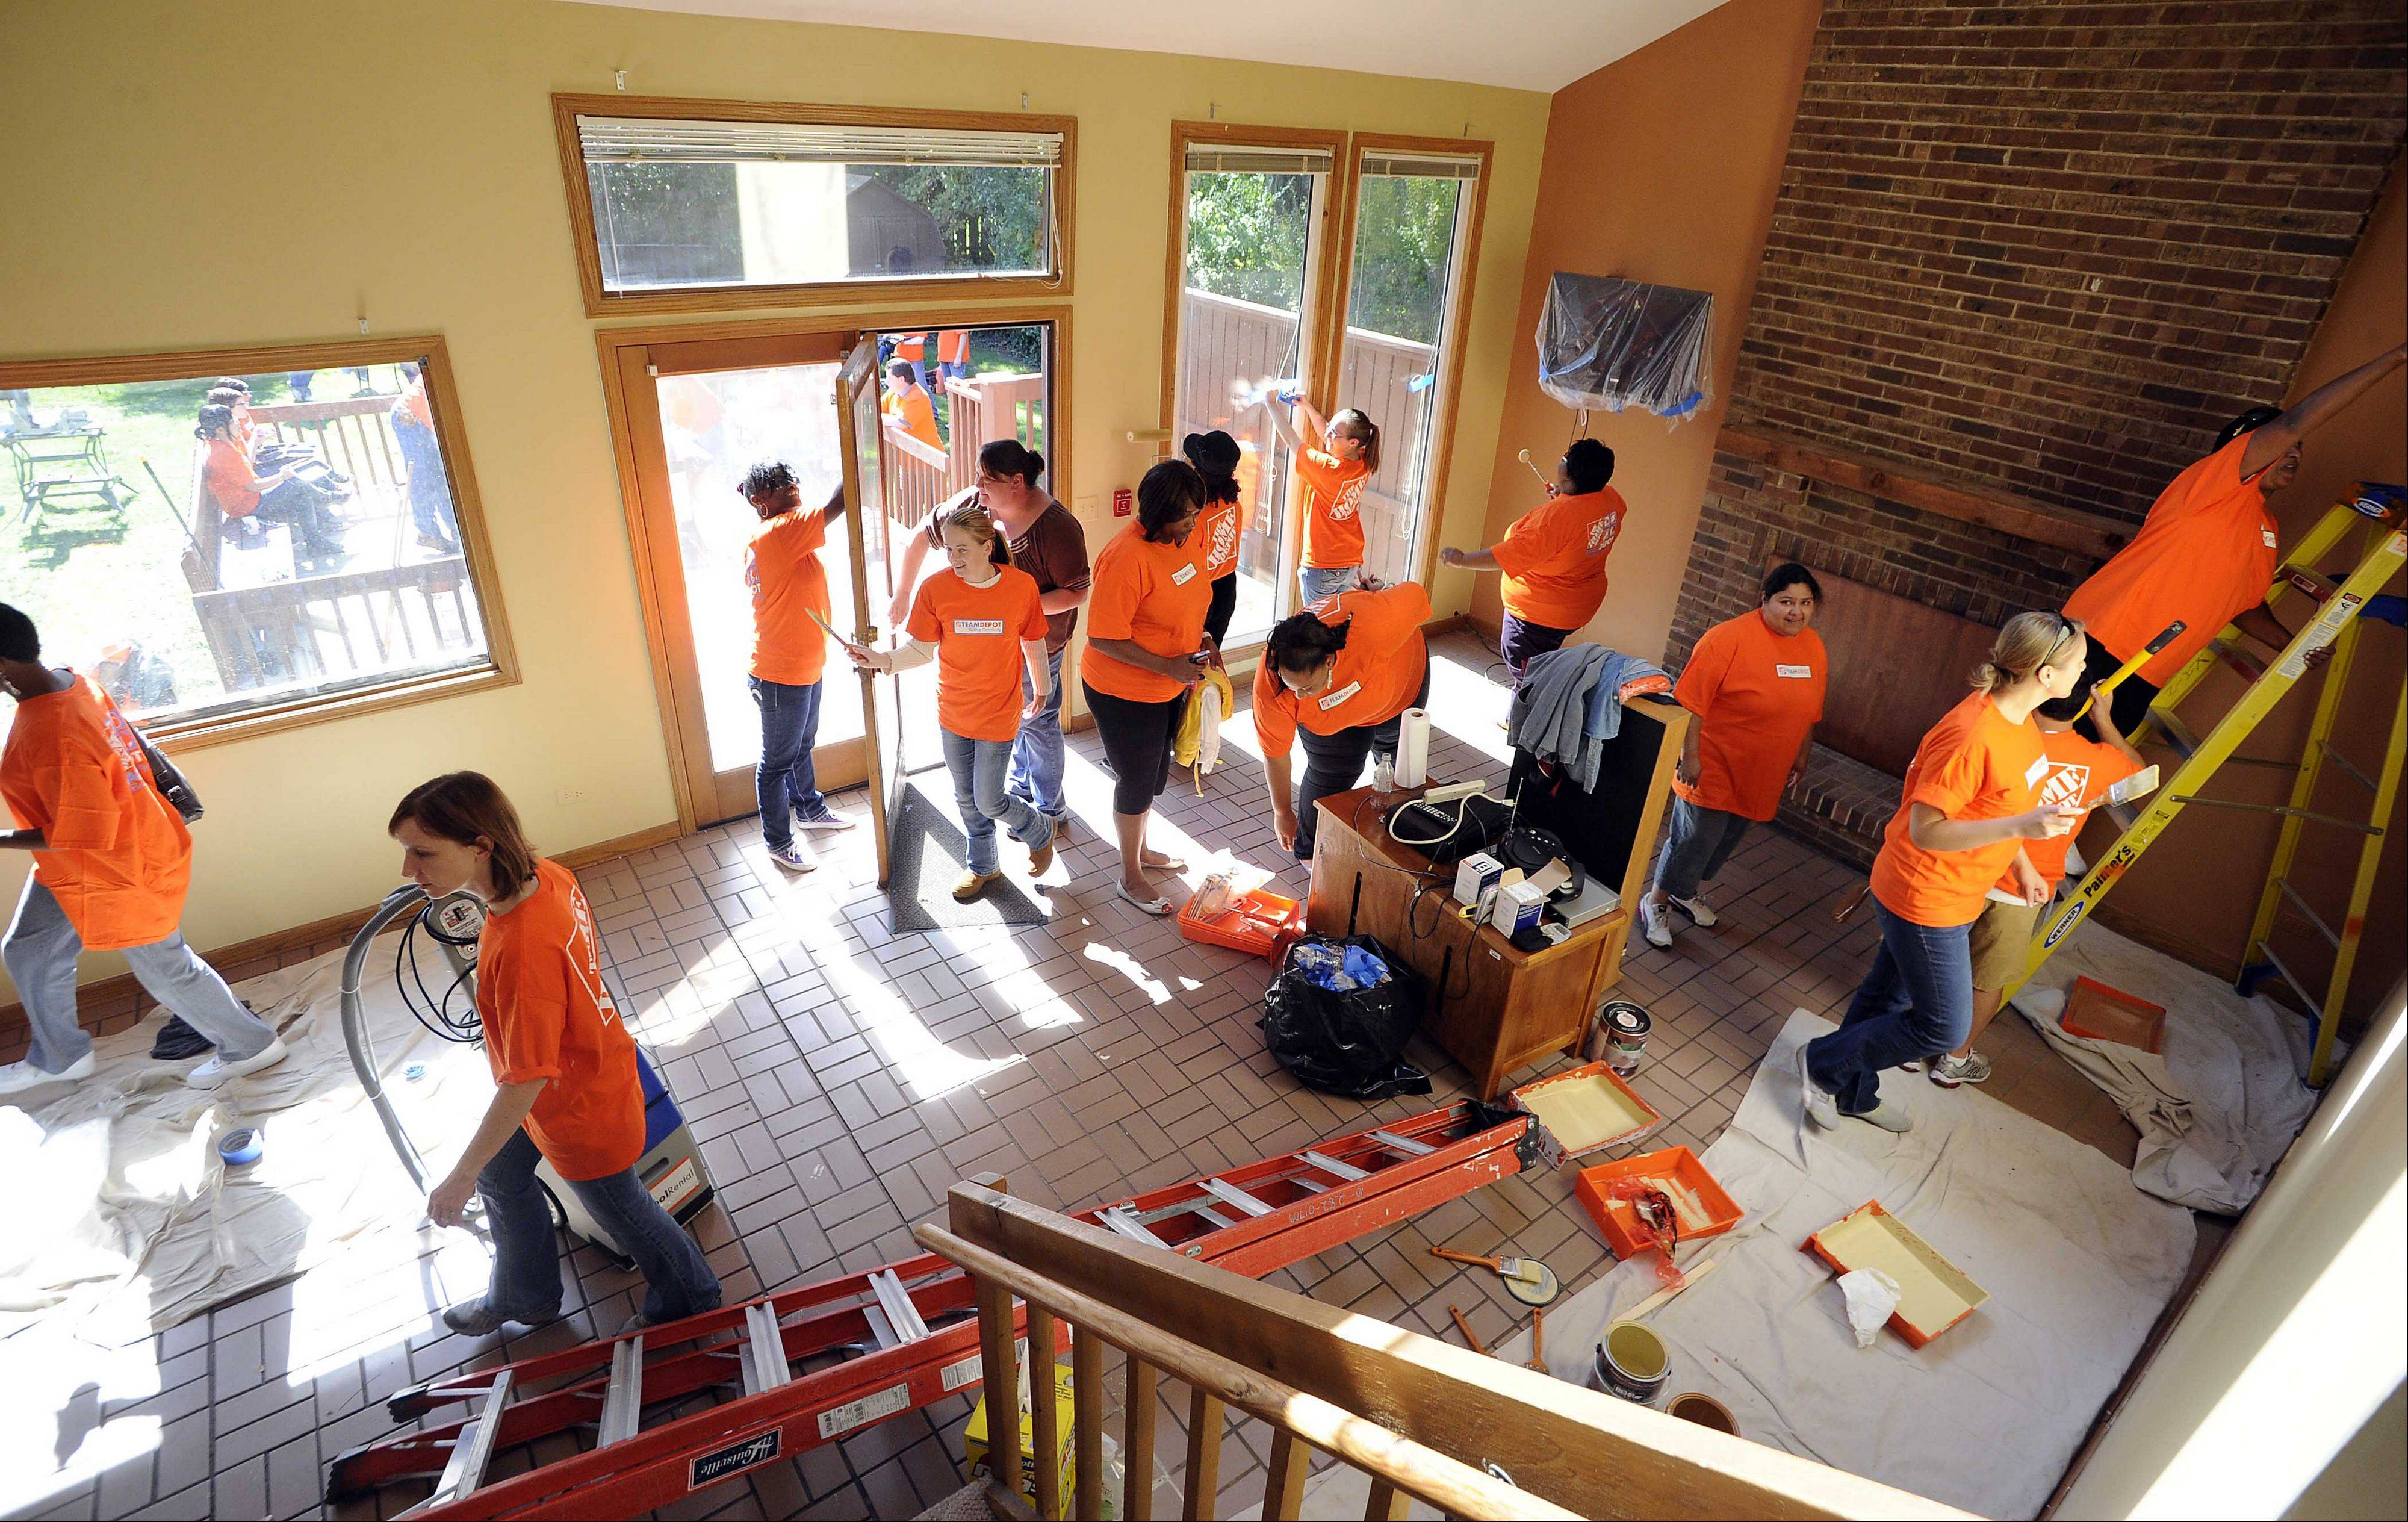 About 50 Home Depot employees Tuesday joined workers and Little City Foundation representatives to renovate one of the Little City Community Integrated Living homes in Palatine.